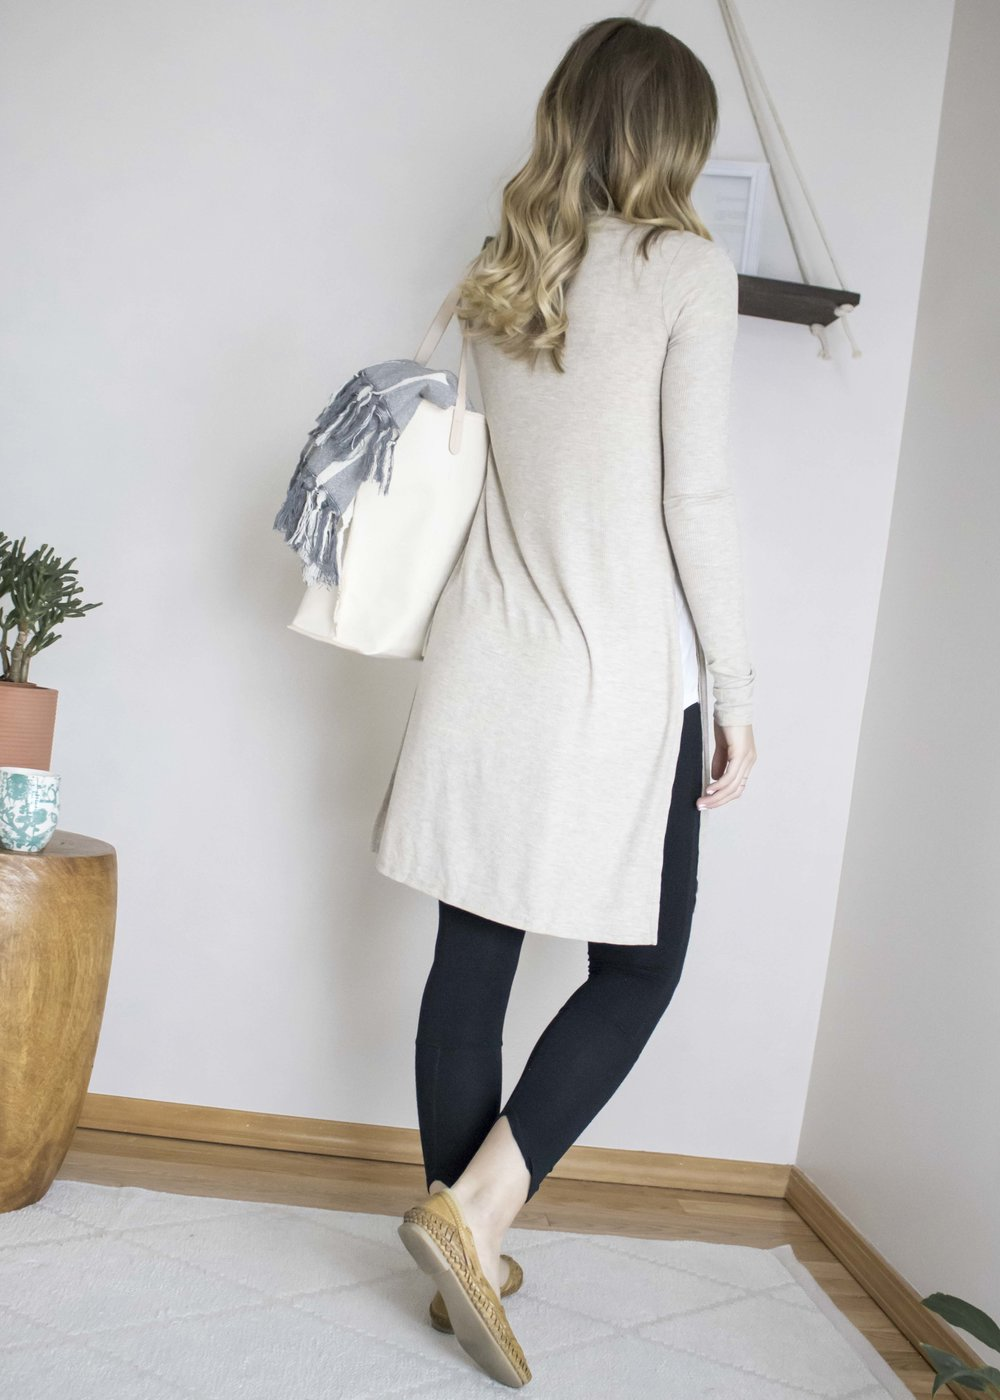 while wearing leggings, most of us to prefer covering our backsides... that's why we chose to offer this longer style of cardigan. it's a great staple for pairing with other fitted pants and also wears well with spring and summer dresses.